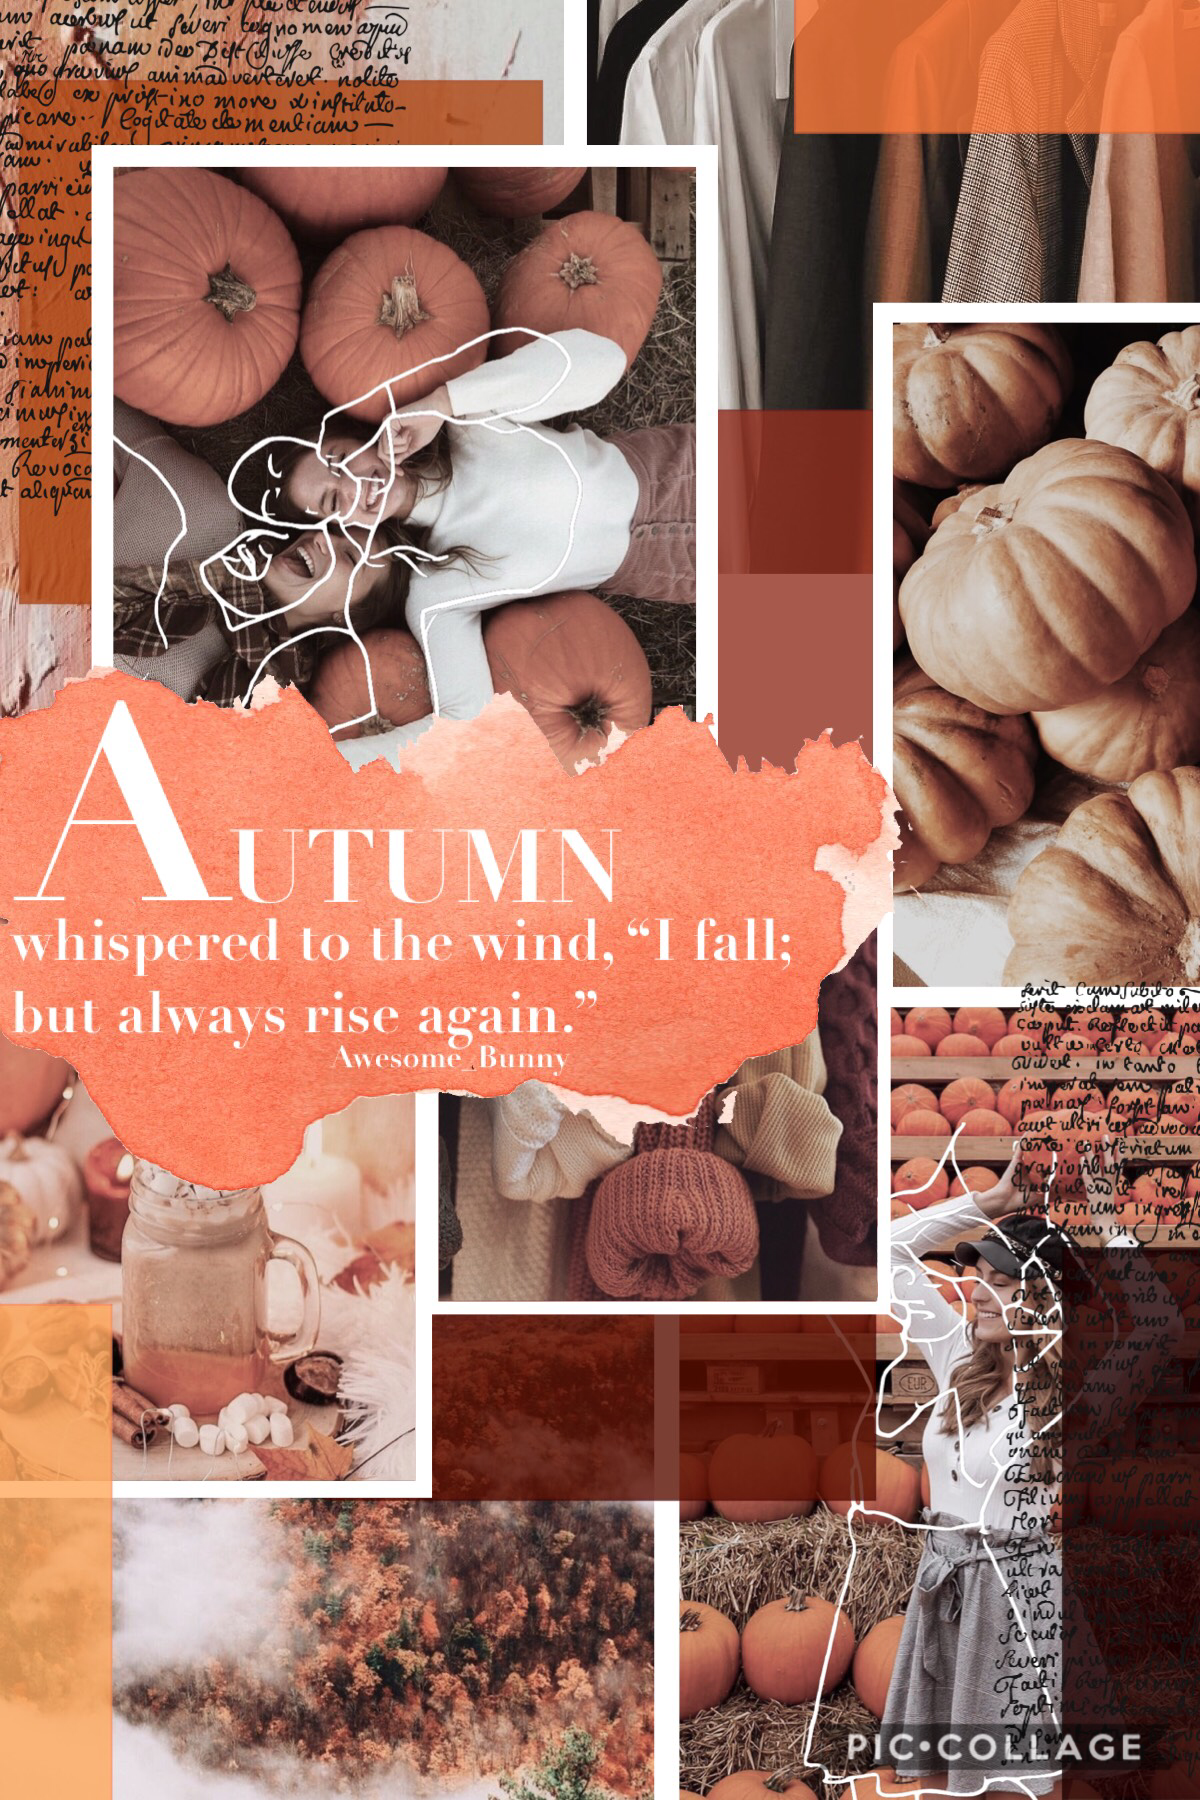 10/15/19 | Contest entry to @-0atmeal-'s fall contest! Go enter!!! 🍂